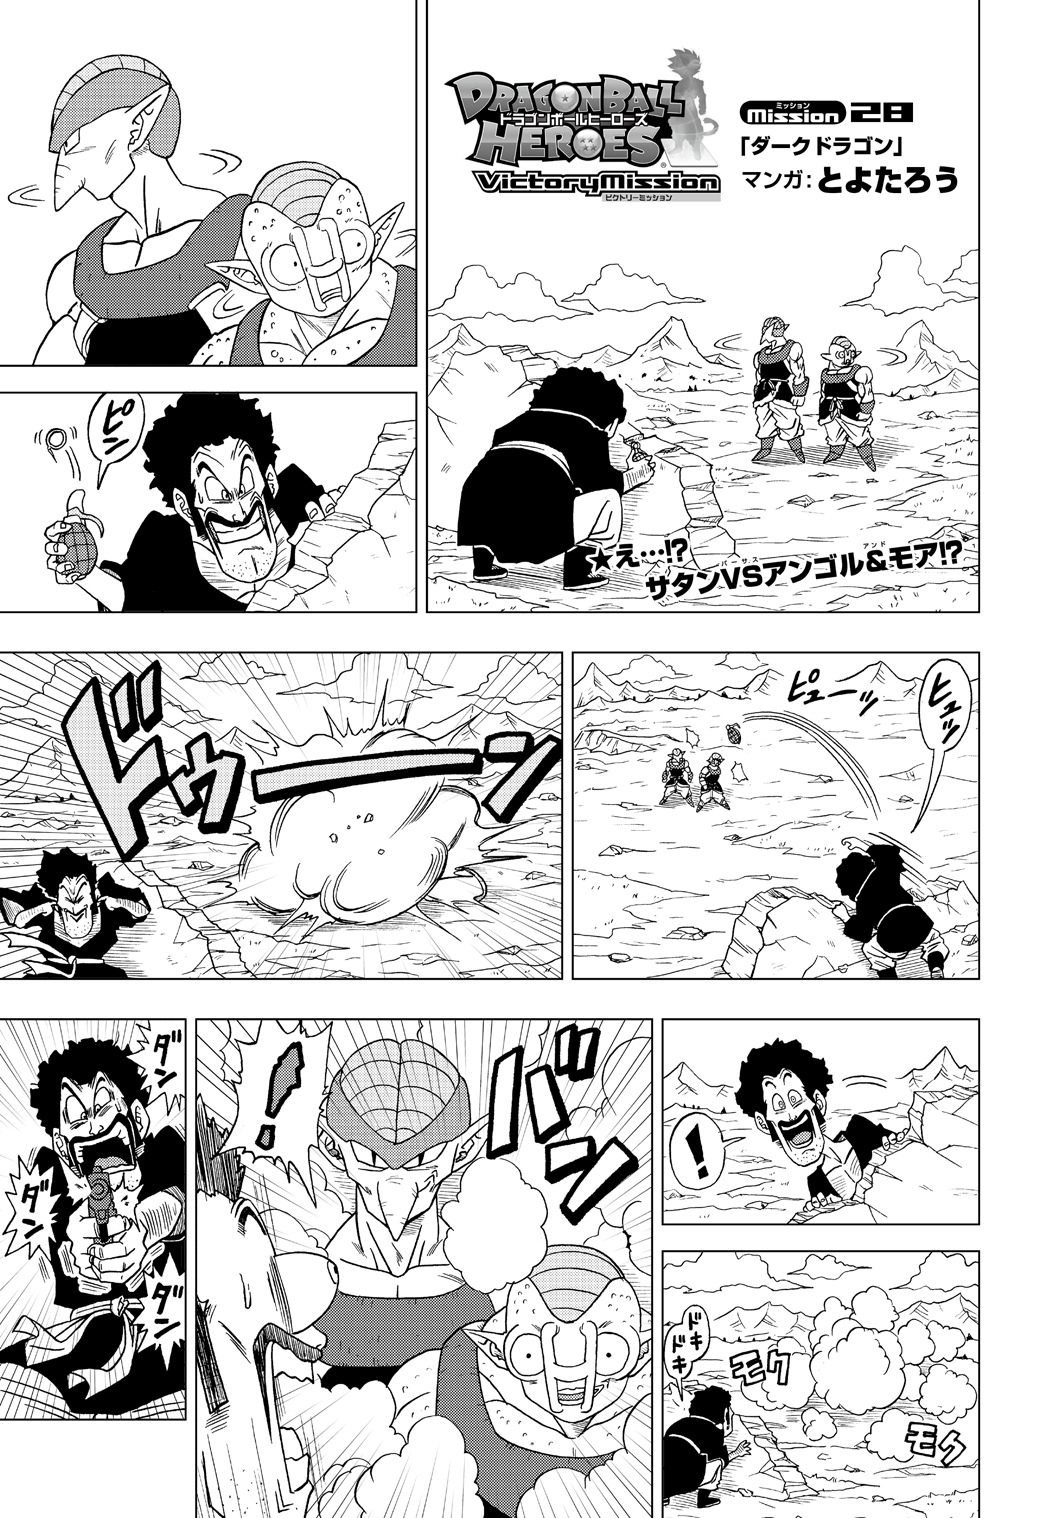 Dragon Ball Heroes Victory Mission Chapitre 028